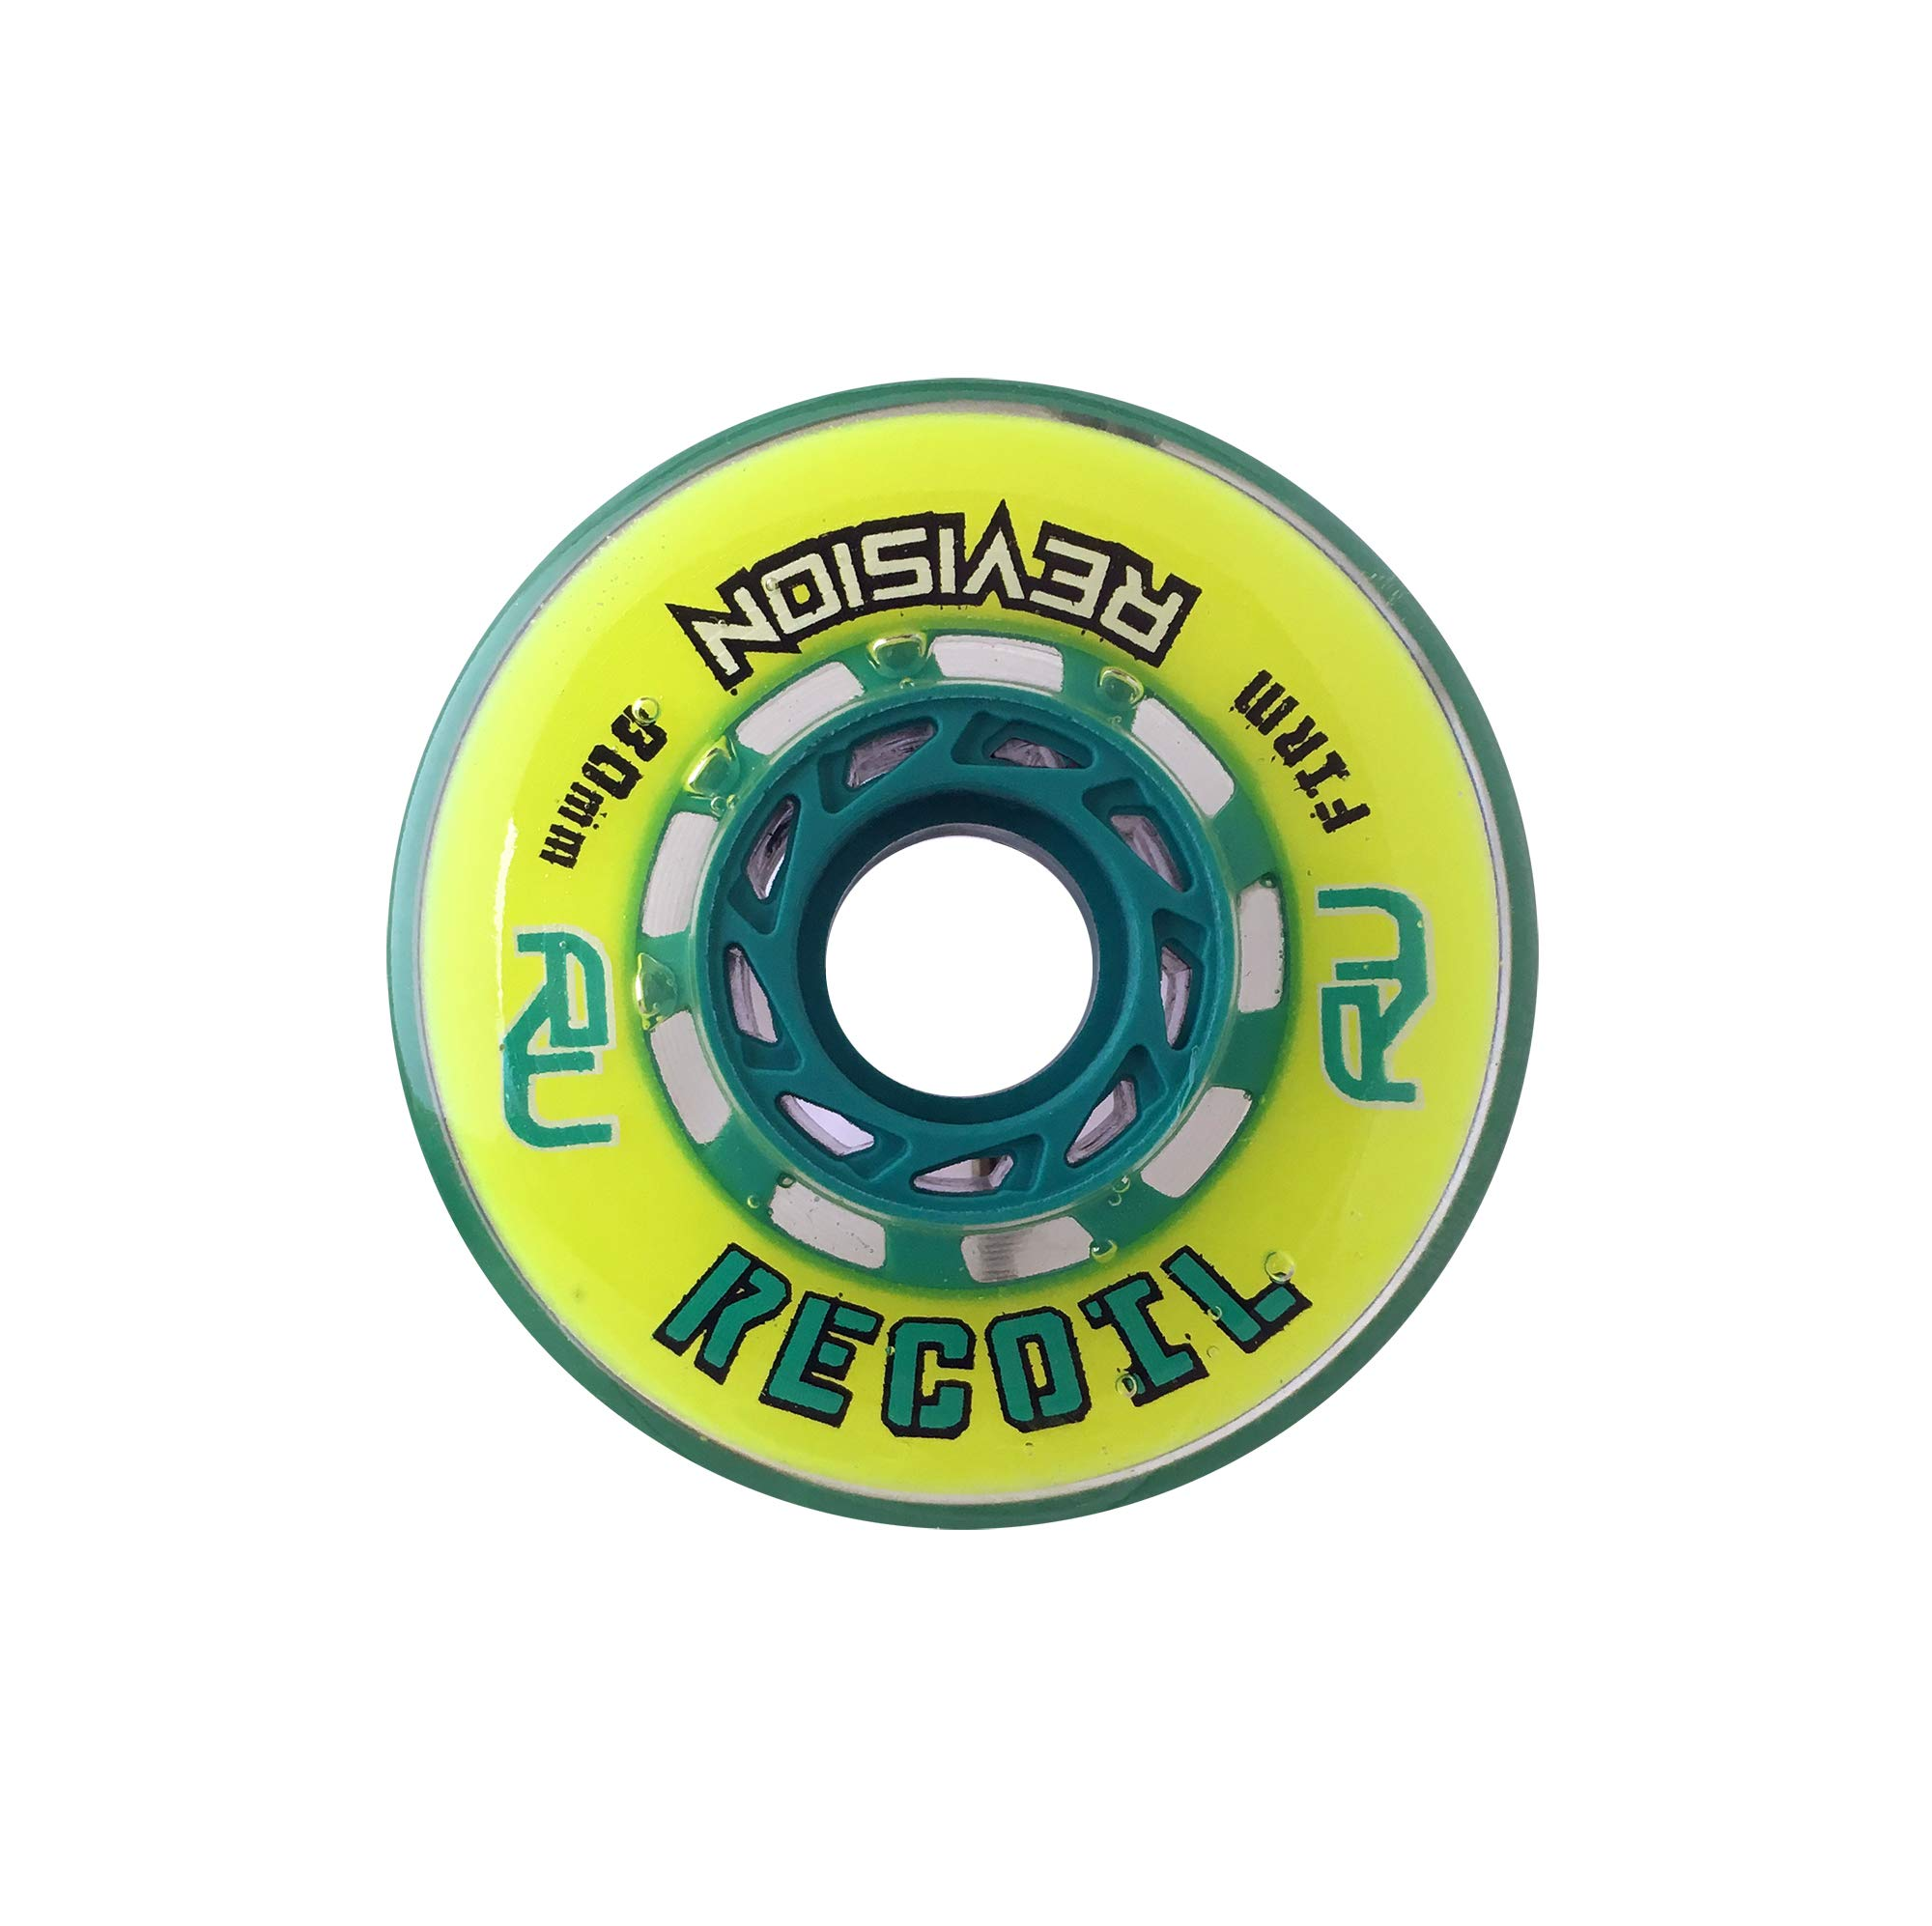 Revision Recoil Indoor Inline Roller Hockey Wheel - 74A - 80mm Firm - Yellow & Teal by Revision Hockey